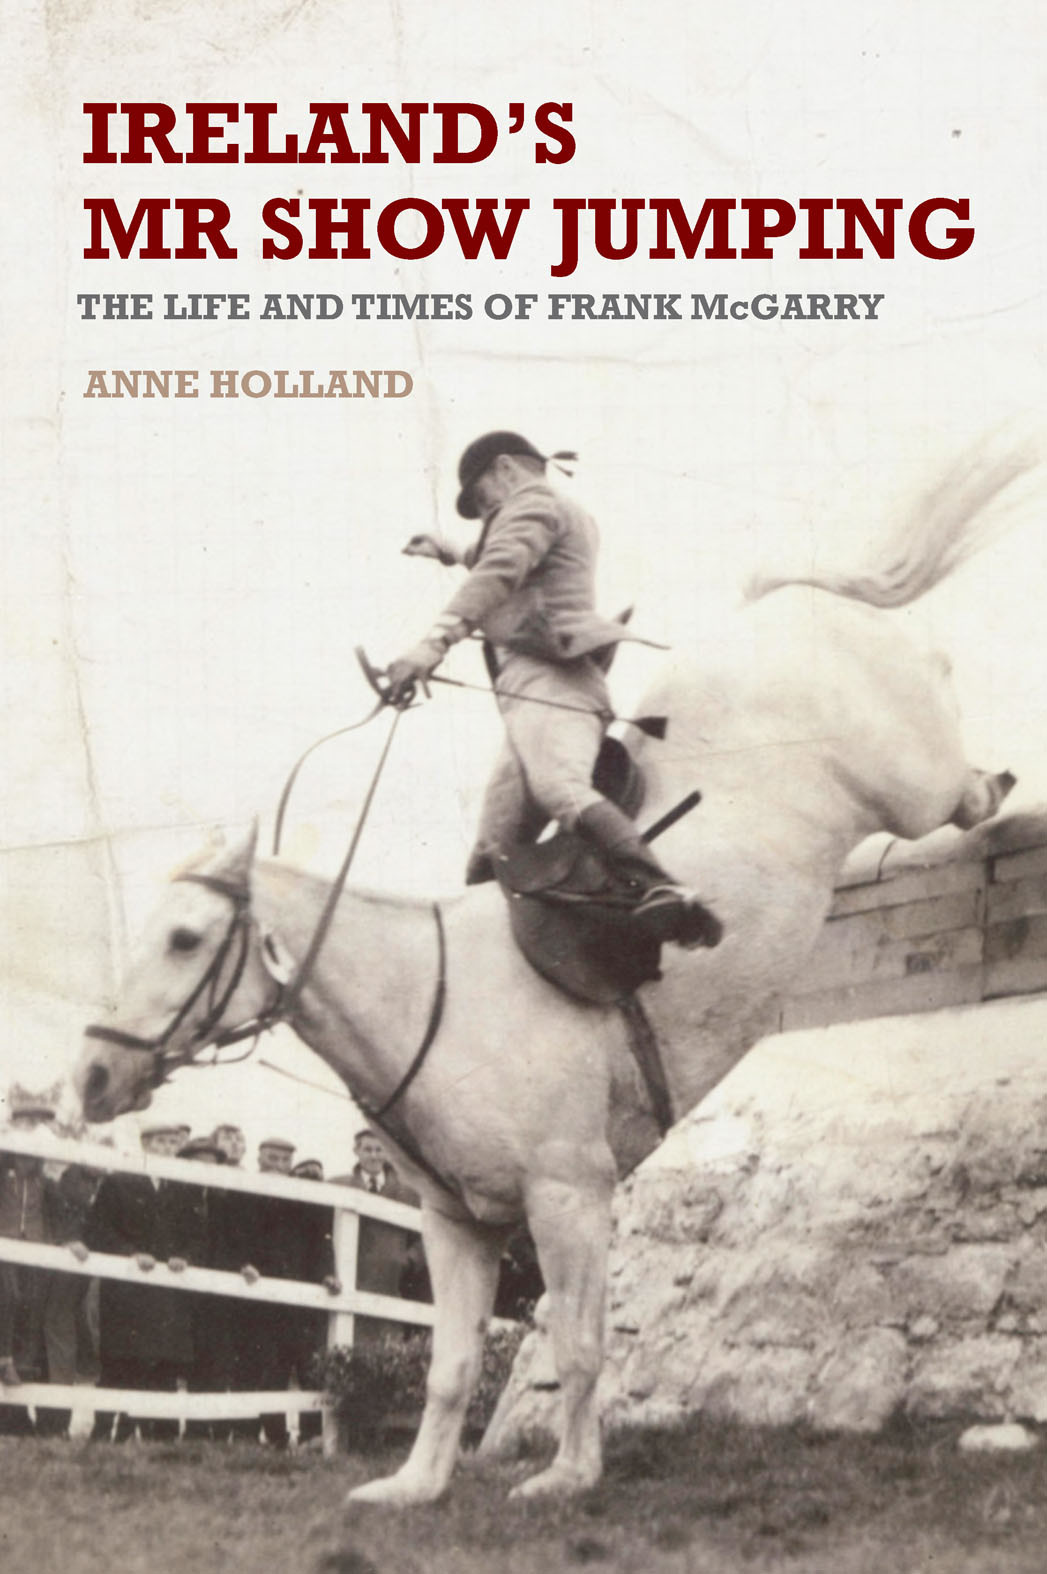 Ireland's Mr Show Jumping: The Life and Times of Frank McGarry, by Anne Holland